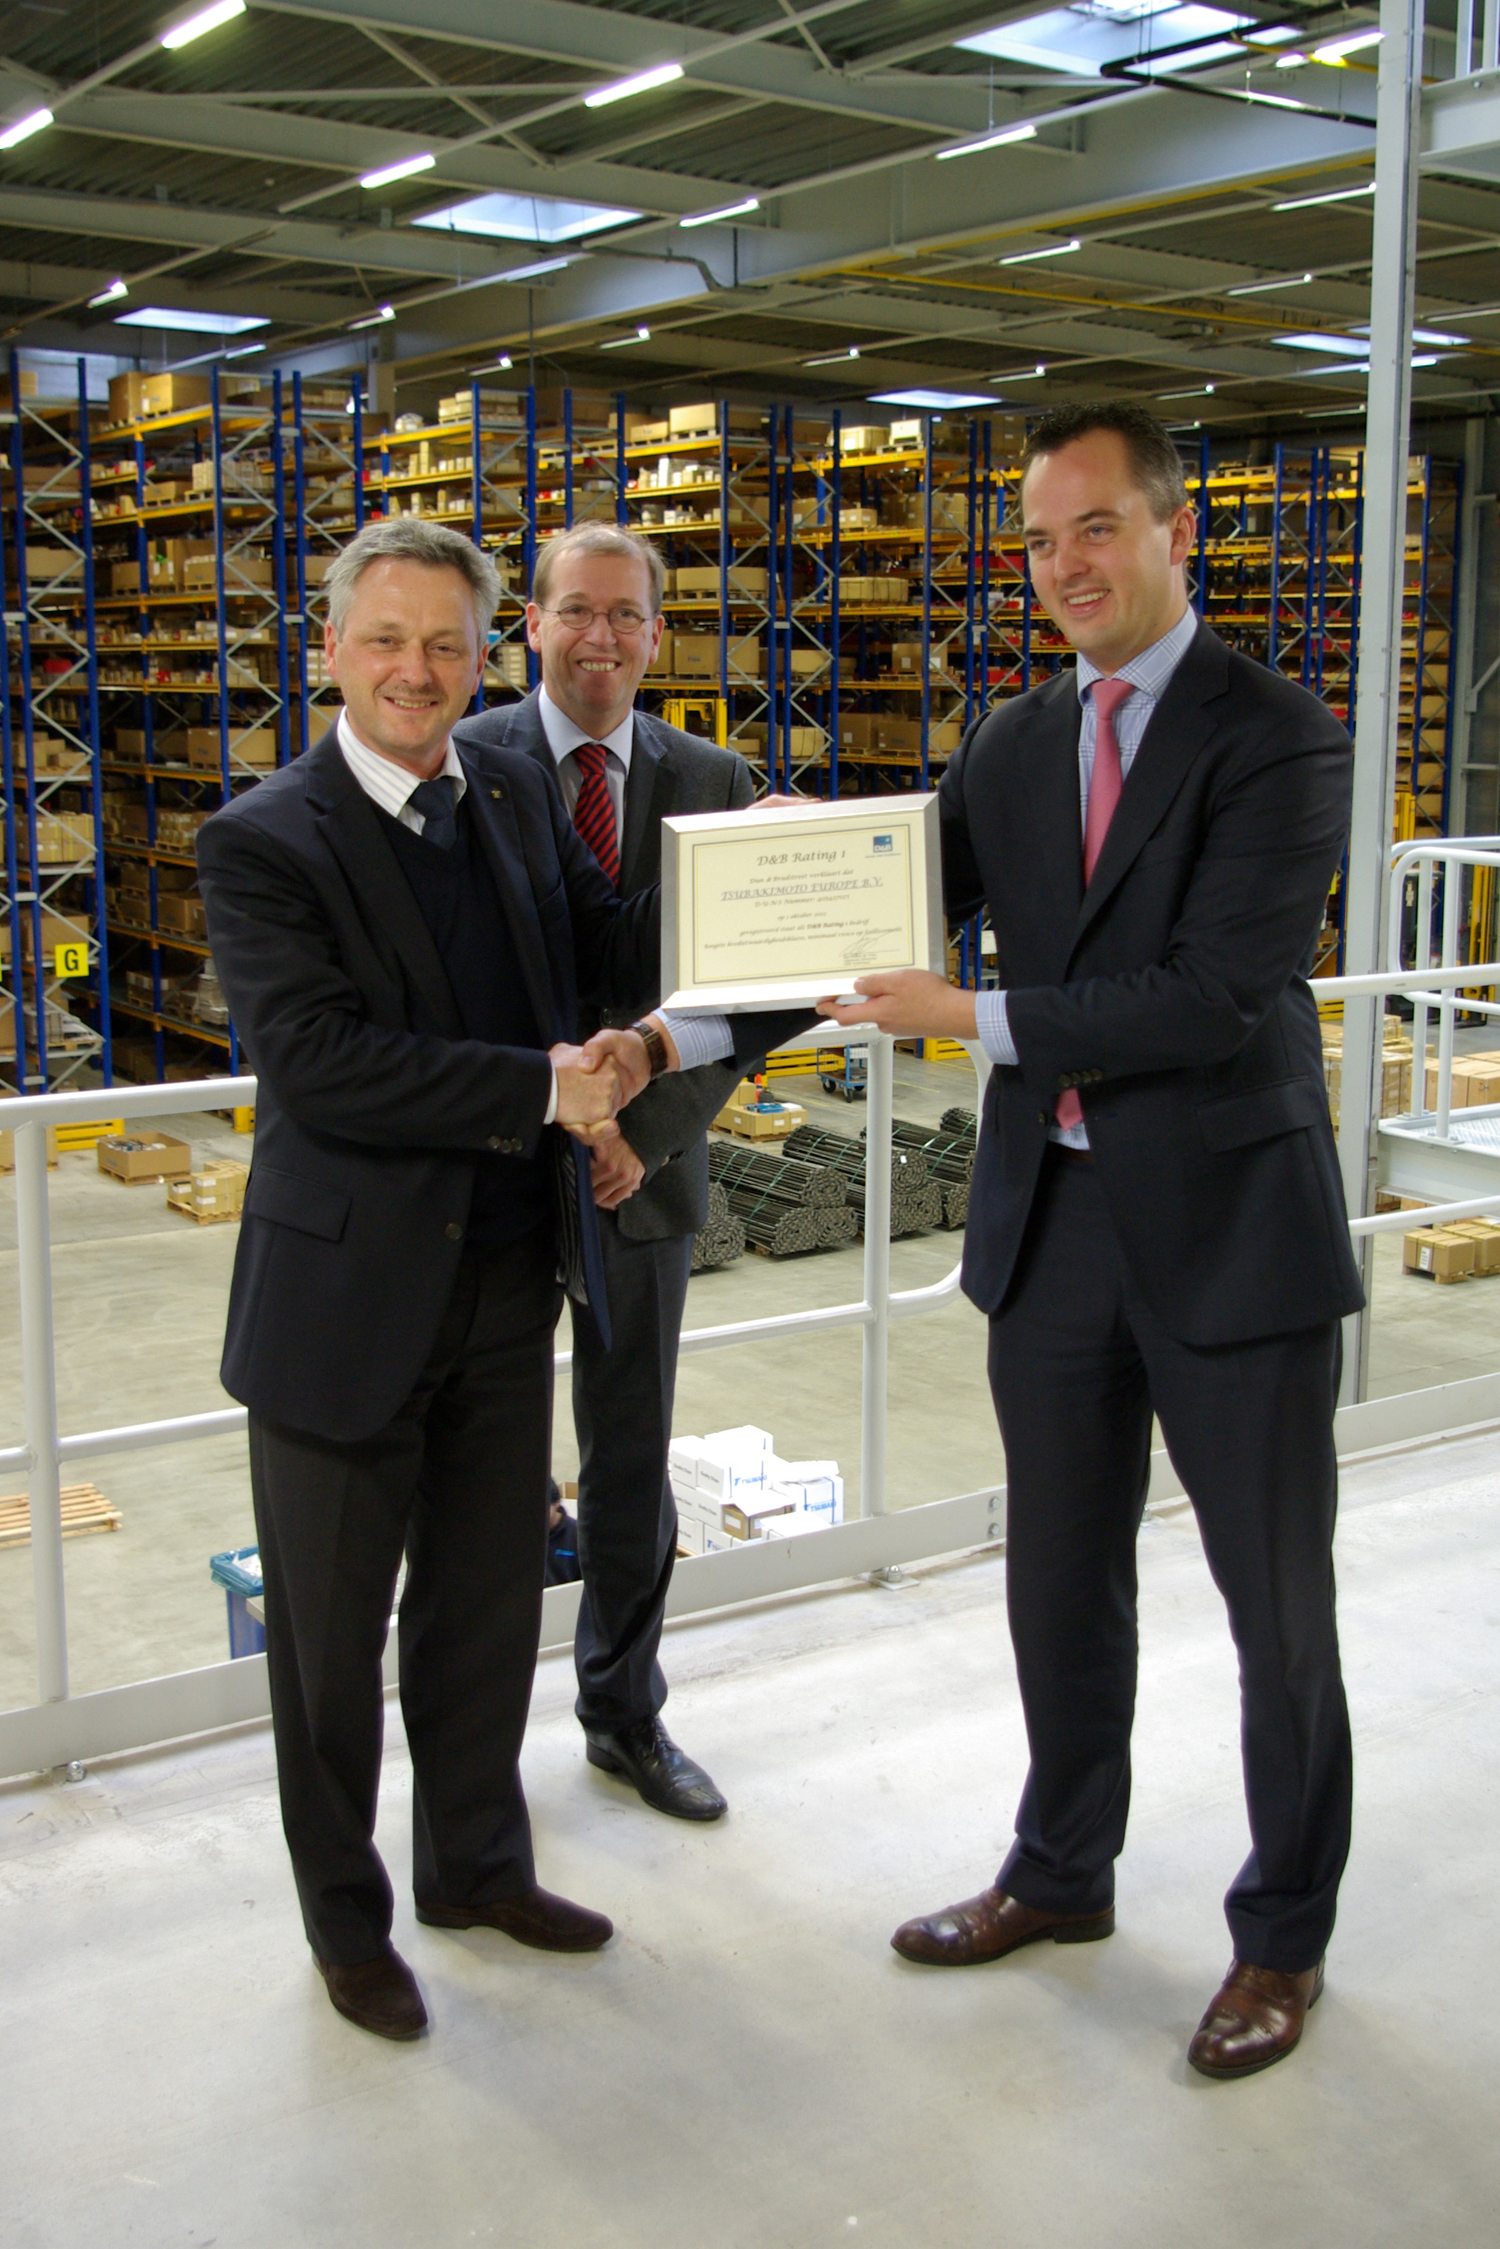 Tsubaki Europe awarded the highest level of creditworthiness by Dun & Bradstreet